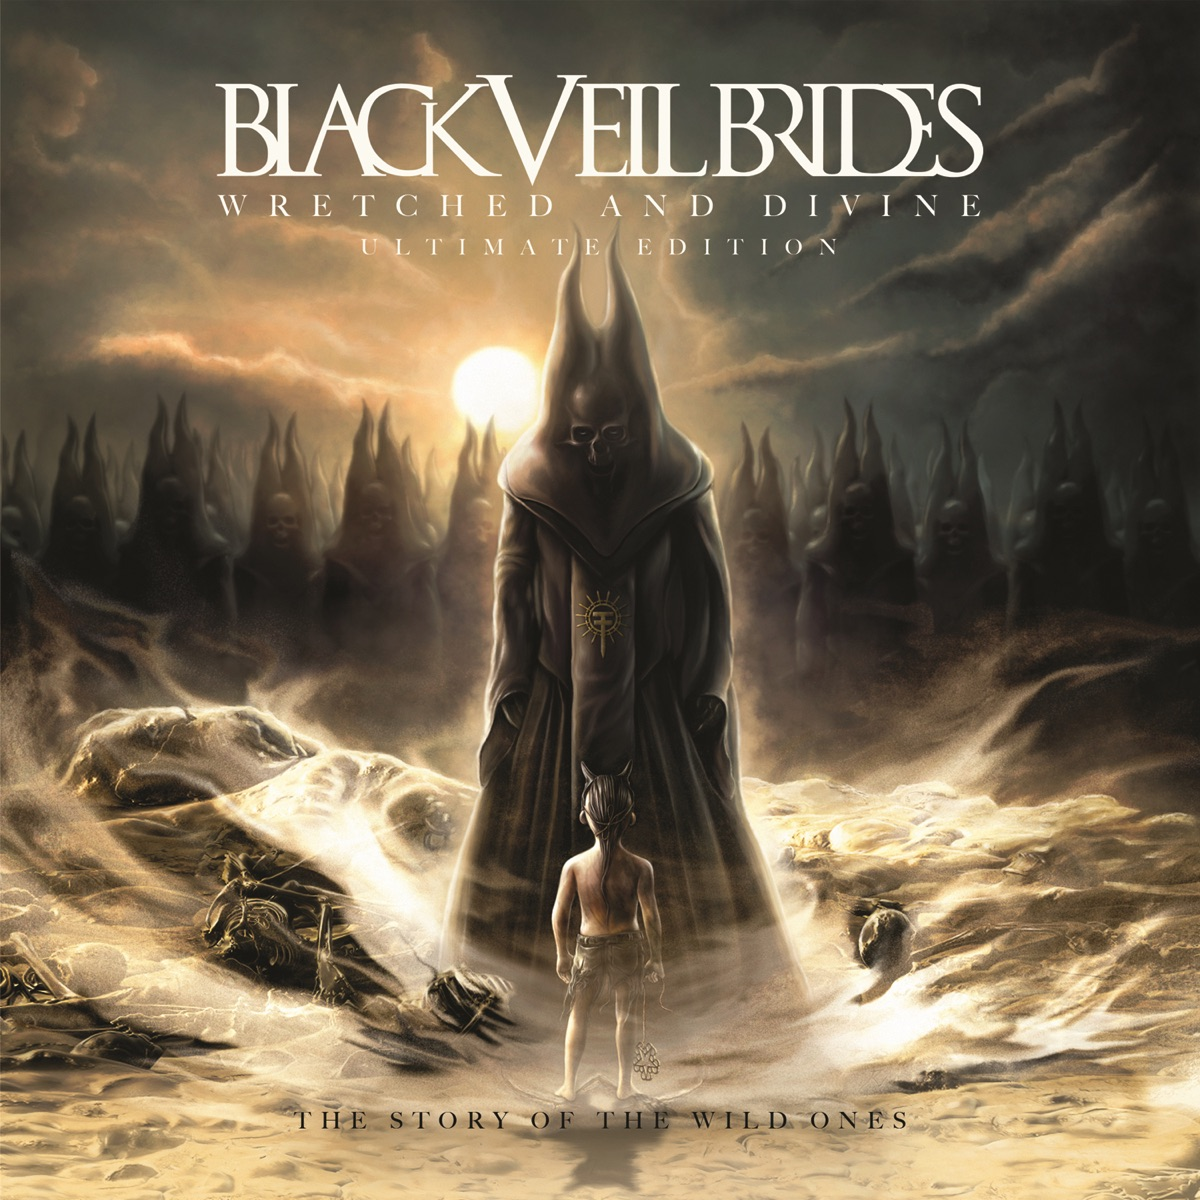 Wretched and Divine The Story of the Wild Ones Ultimate Edition Black Veil Brides CD cover